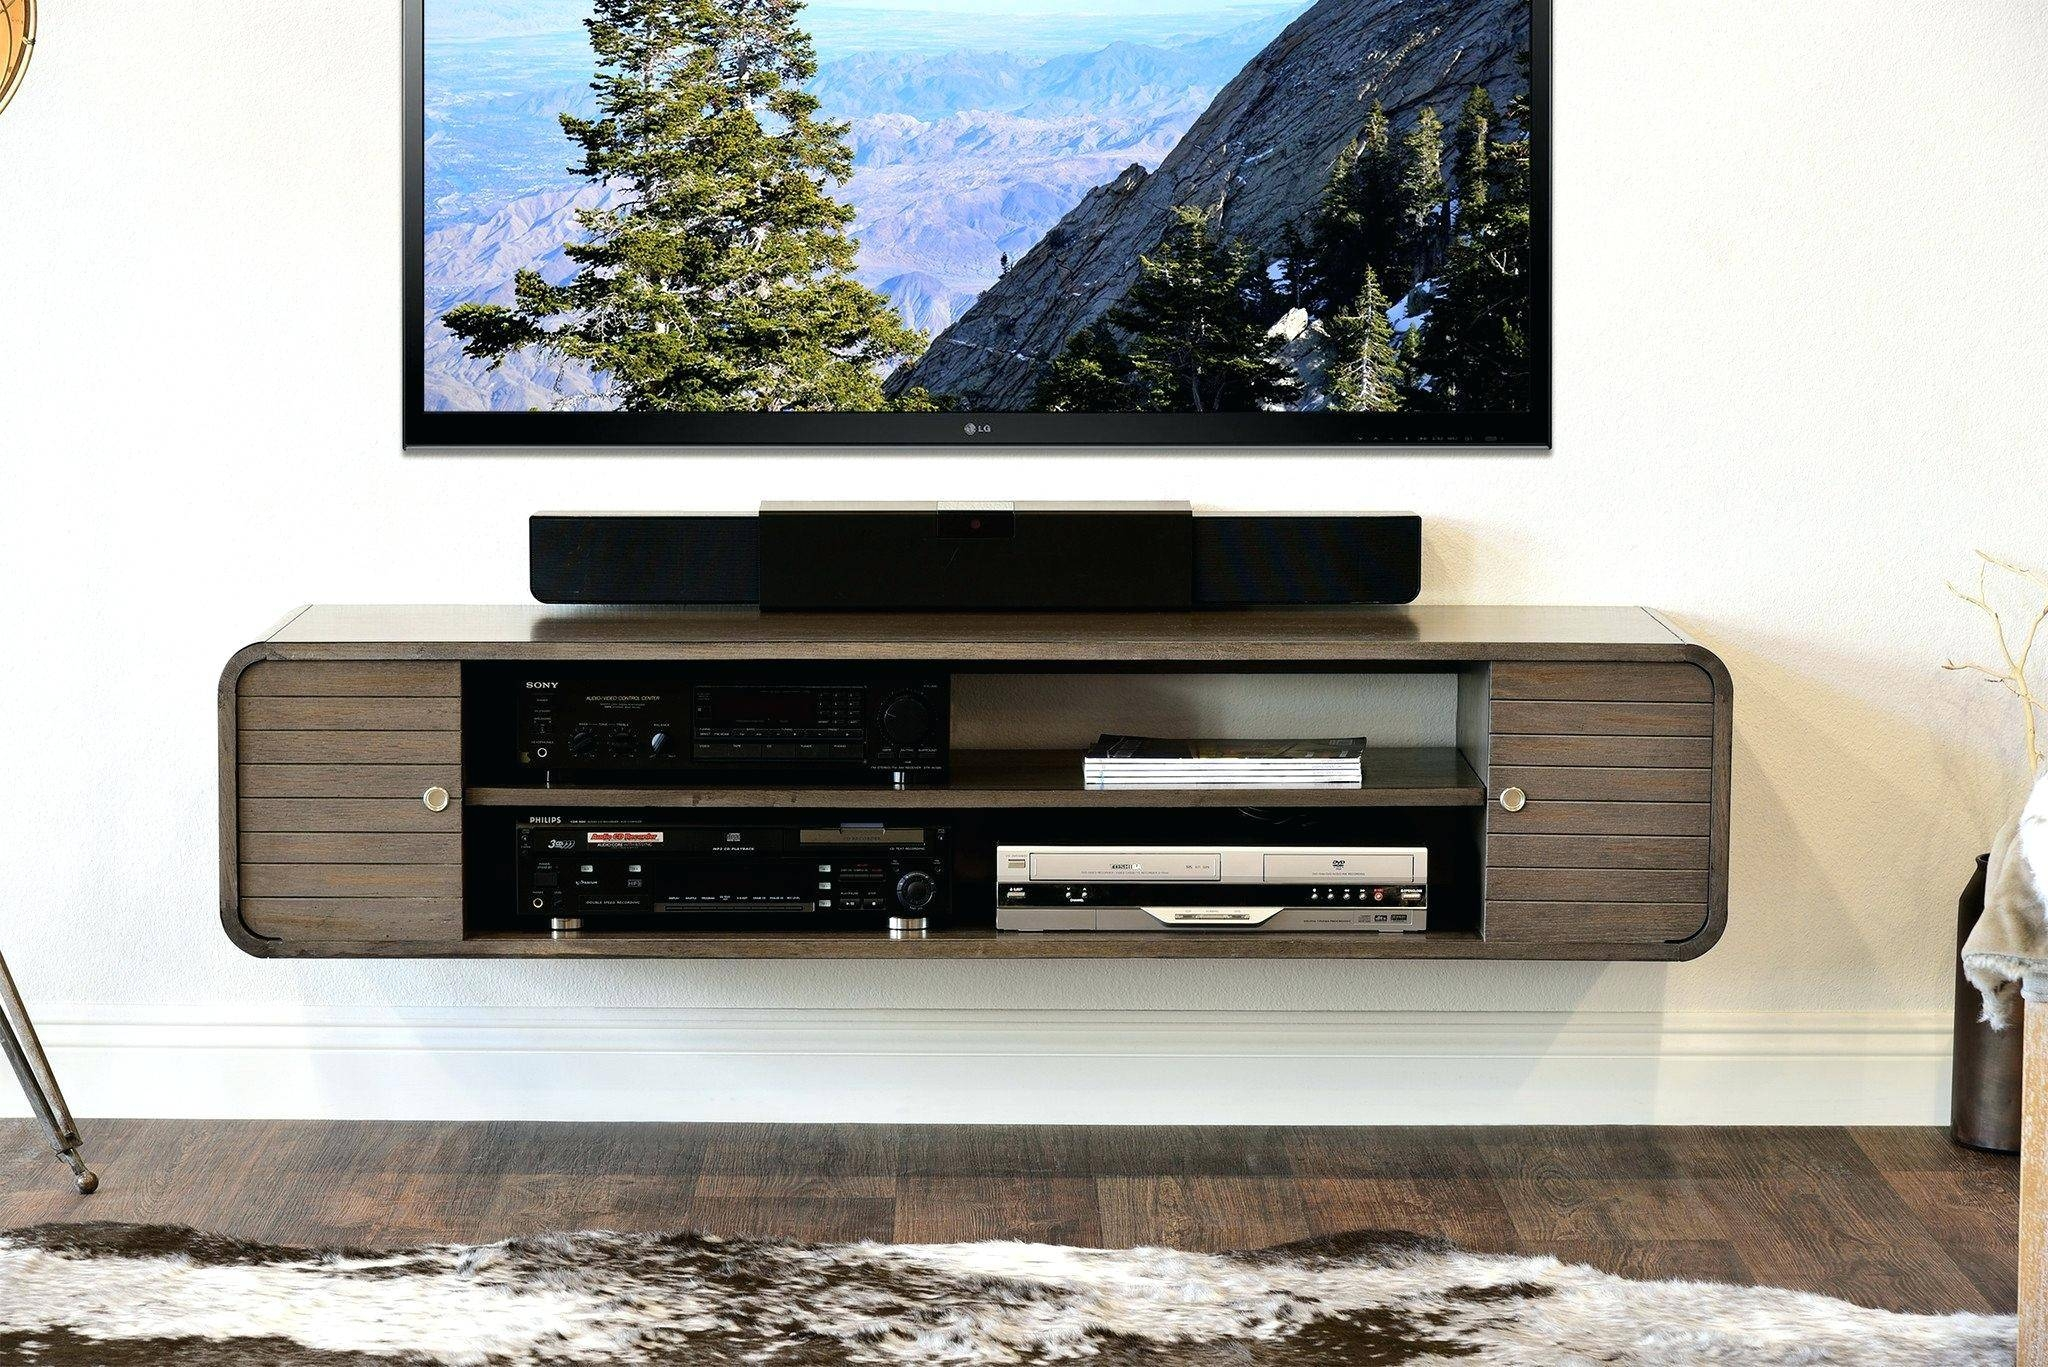 Tv Stand : Tv Stand With Rounded Corners Stockholm Tv Unit Trendy intended for Tv Stands With Rounded Corners (Image 8 of 15)